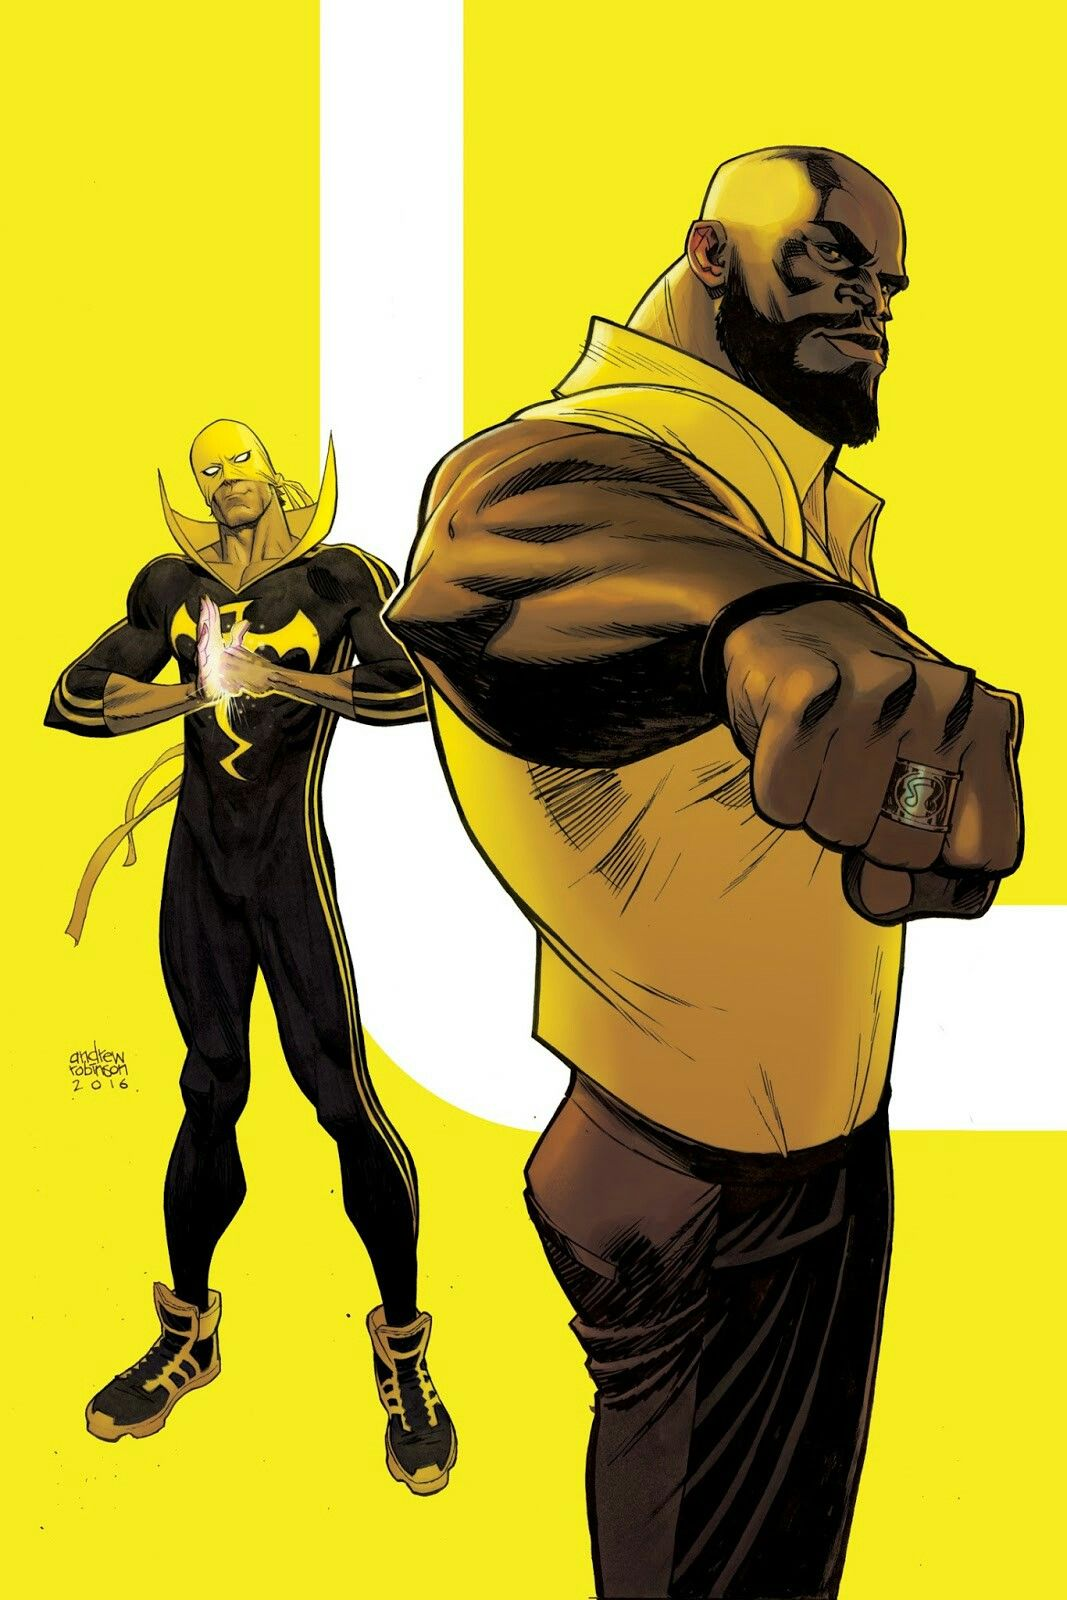 Must see Wallpaper Marvel Luke Cage - 05fc836a49c7238089413859ea9f3382  Pictures_113318.jpg